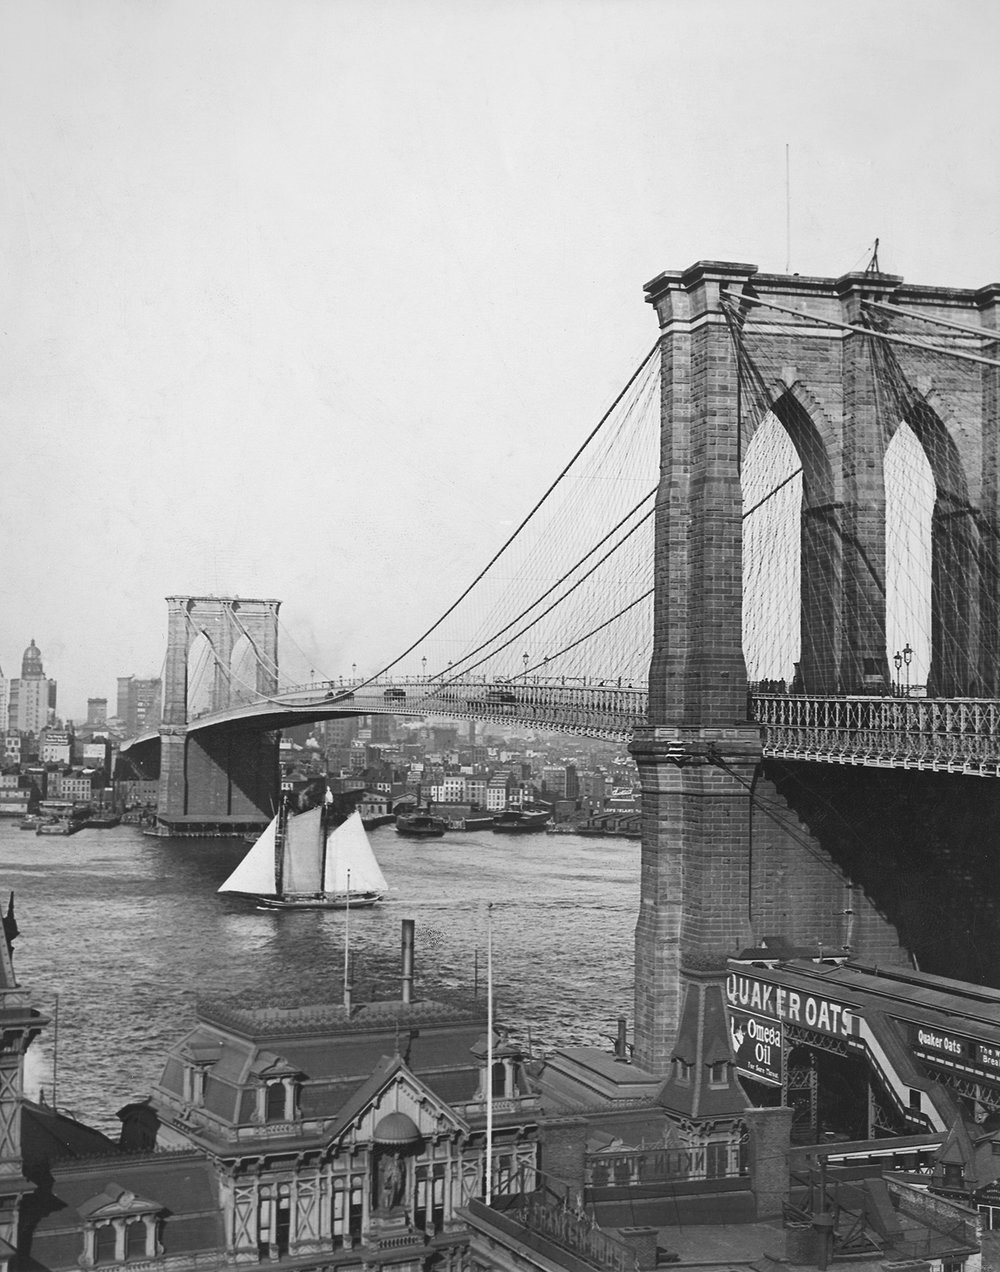 Brooklyn Bridge, Underwood & Underwood, ca. 1900